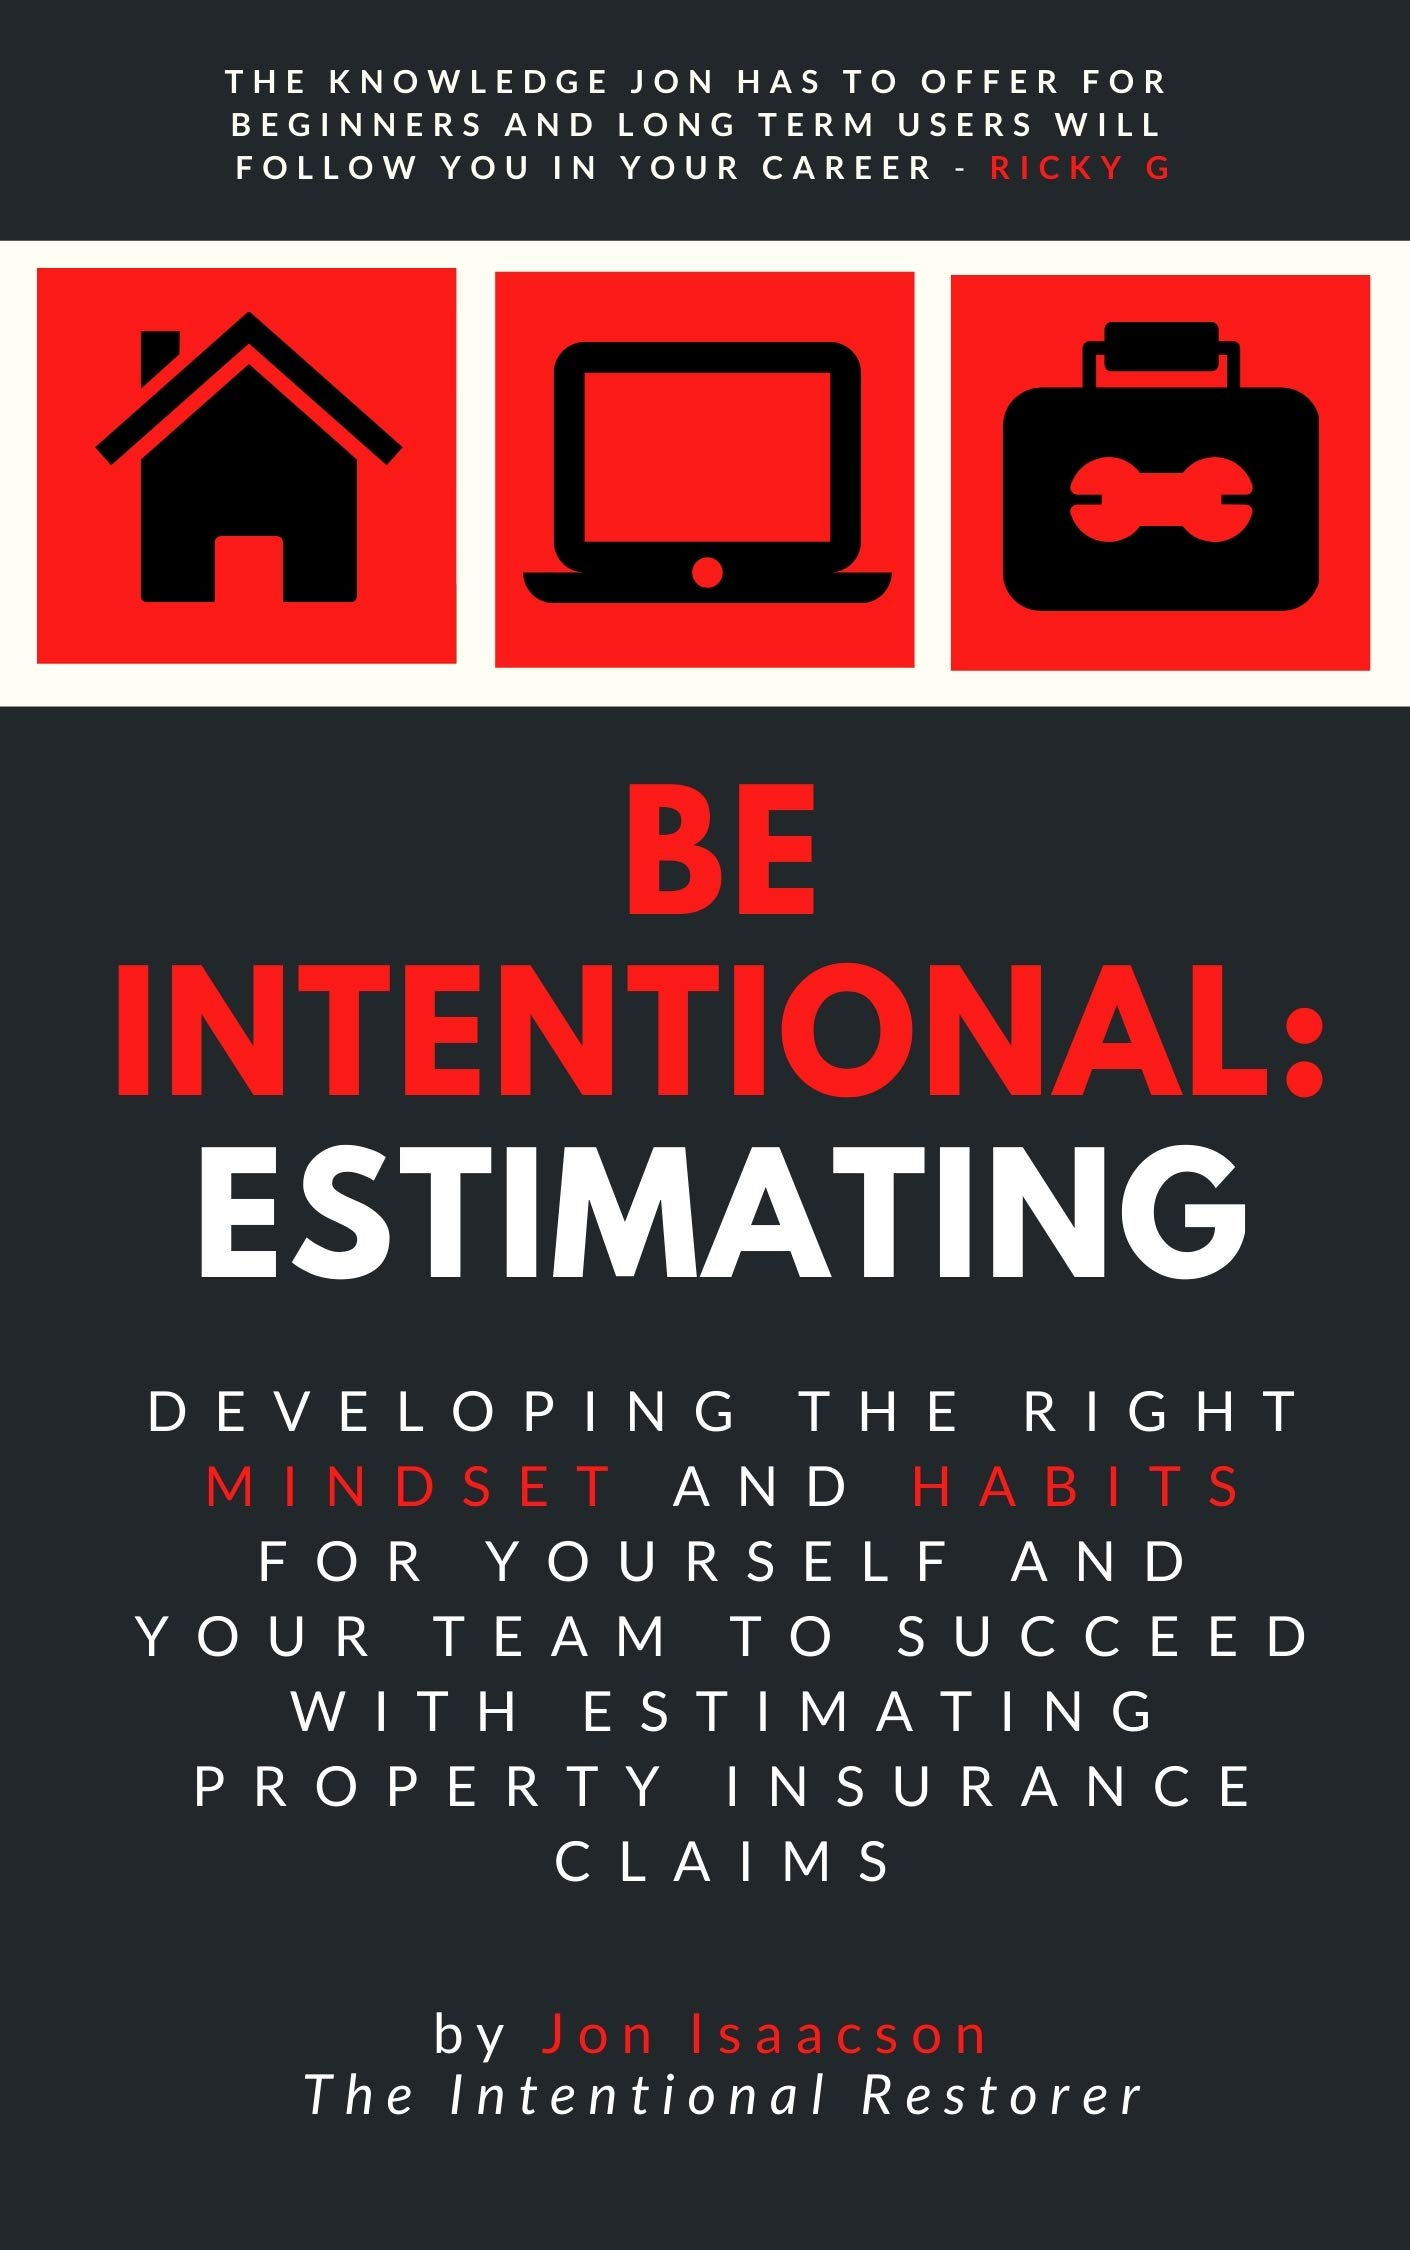 Be Intentional: Estimating: Developing the right mindset and habits for yourself and your team to succeed with estimating property insurance claims